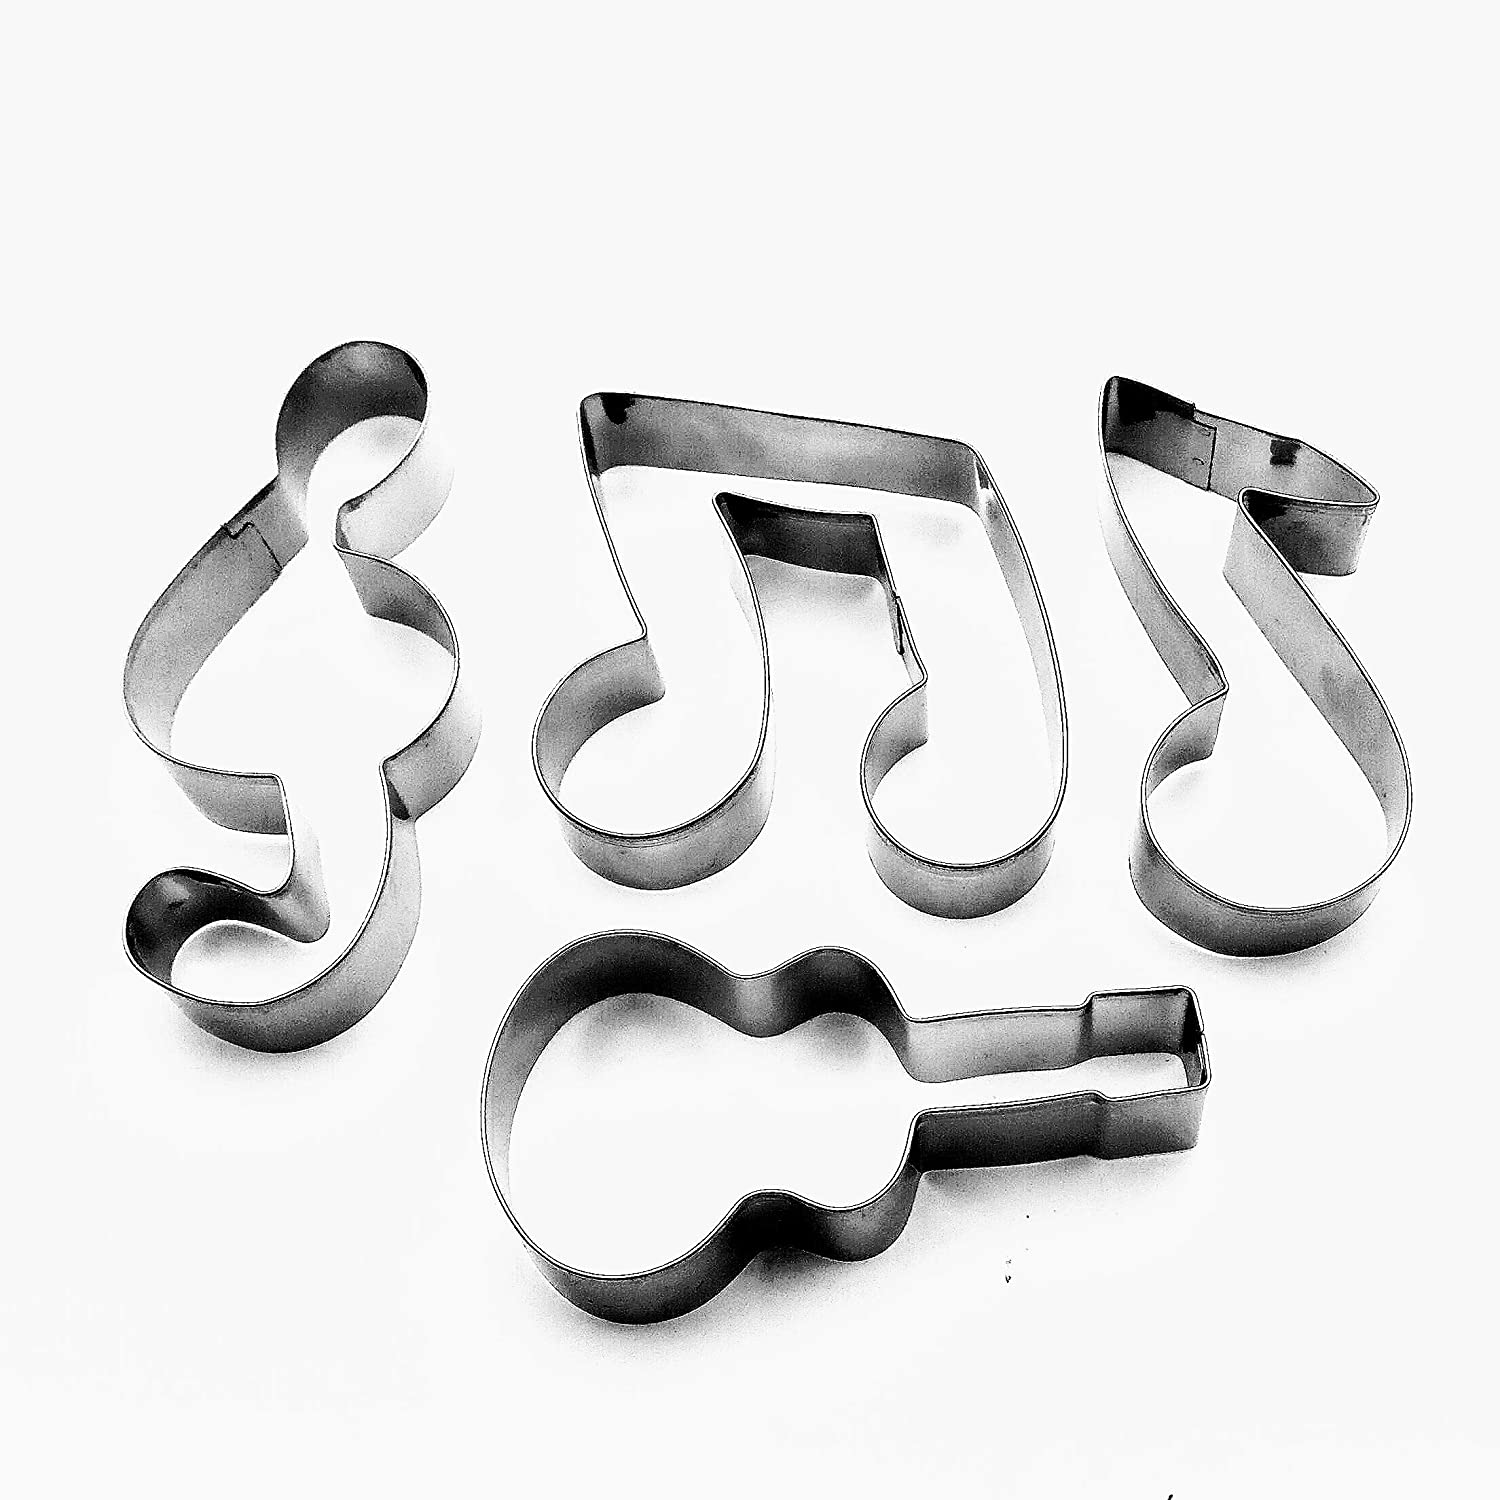 4 Pcs Music Notes Symbol Cookie Cutter Guitar Biscuit